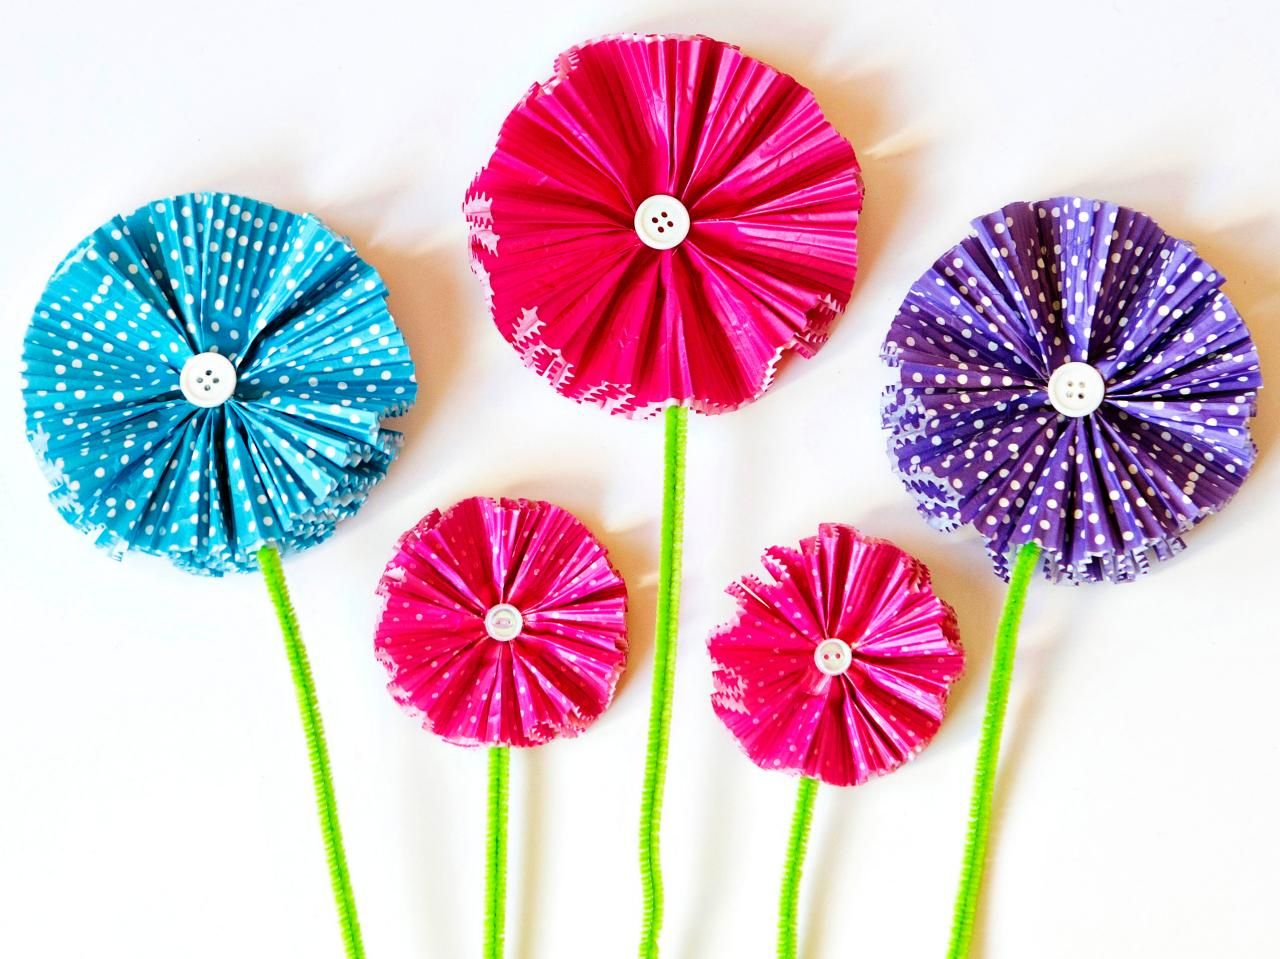 How to make paper flowers using cupcake liners diy network diy network has easy step by step instructions for colorful paper flowers fun mightylinksfo